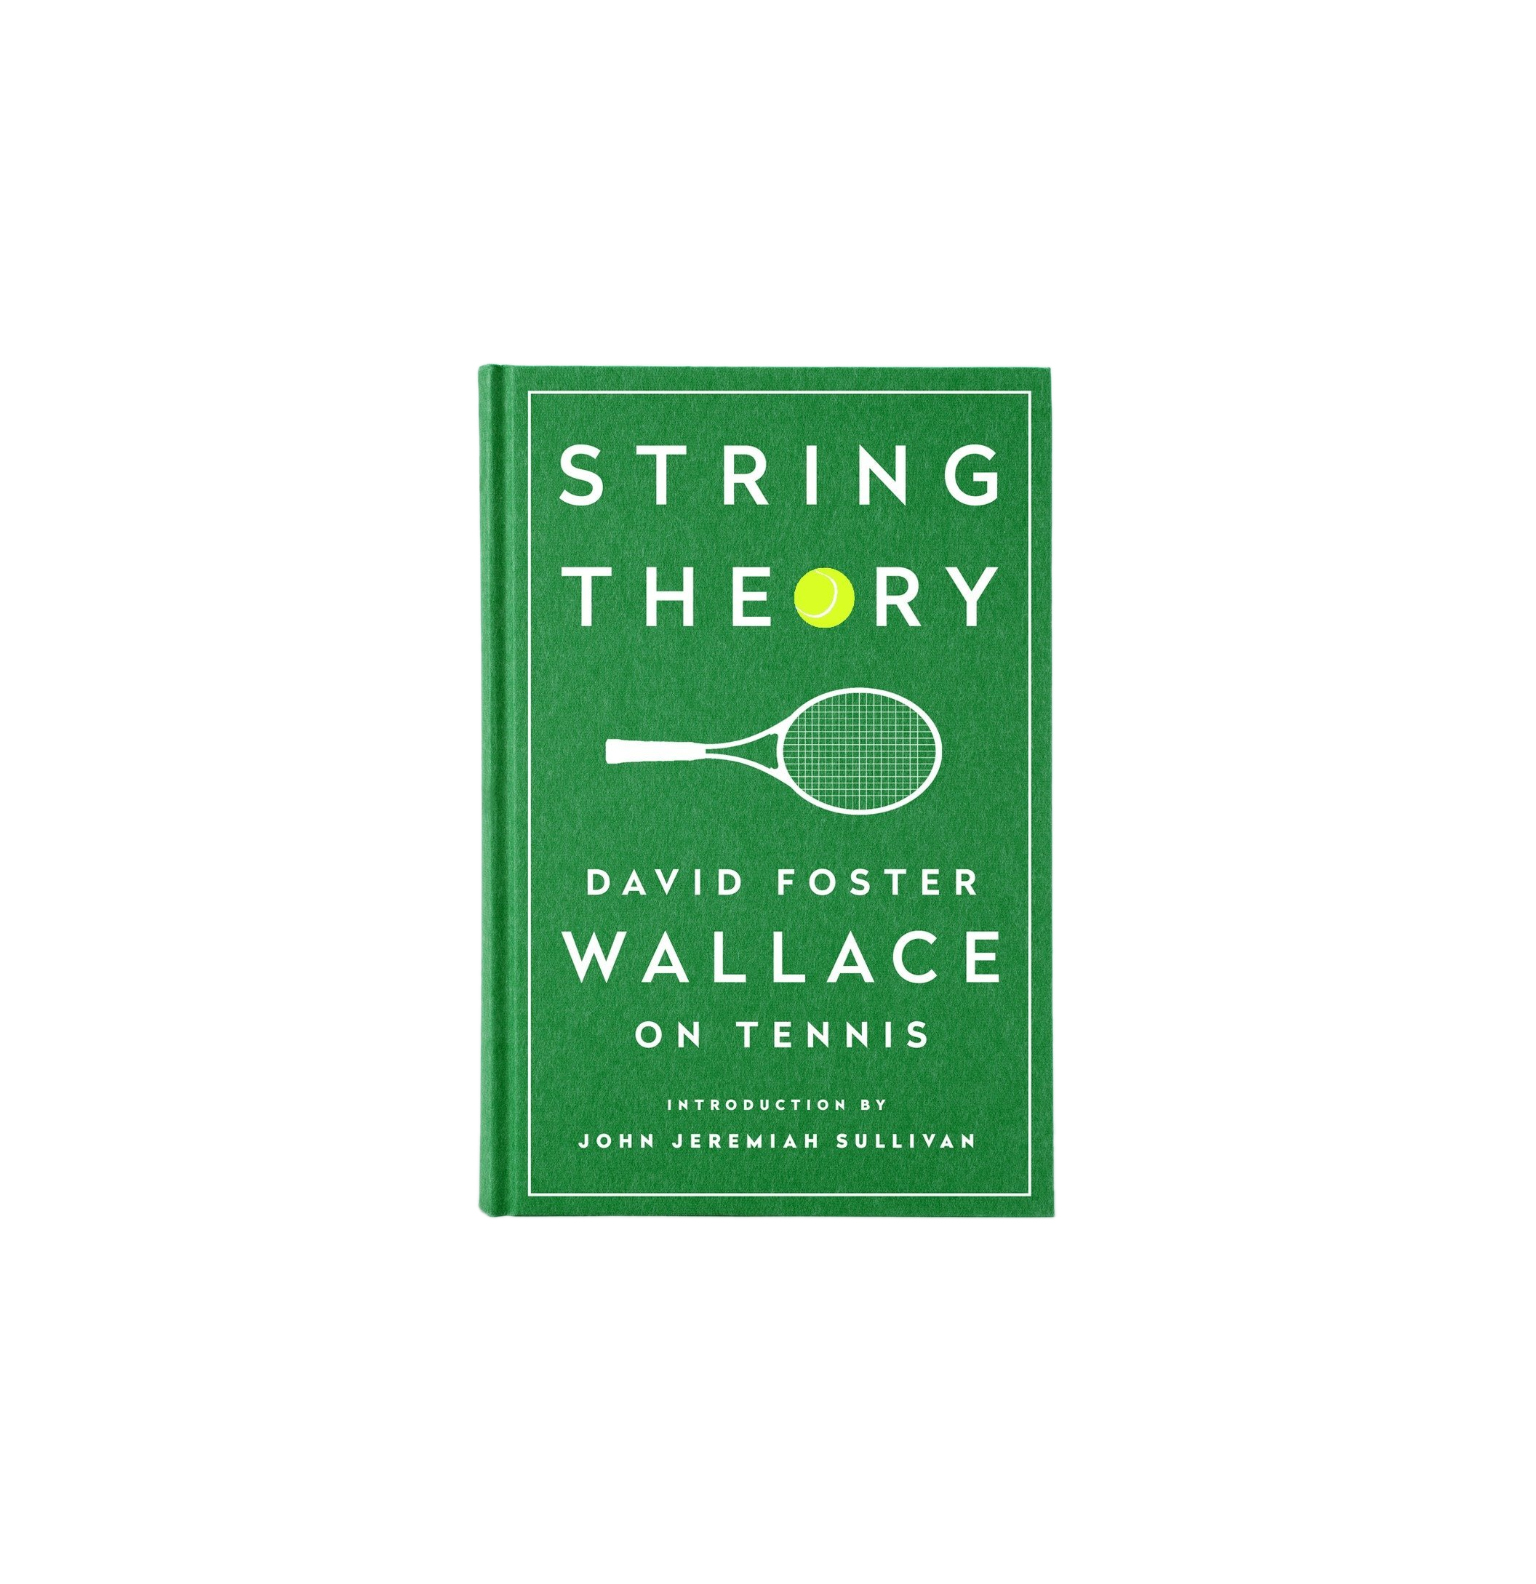 string-theory-david-foster-wallace-tennis